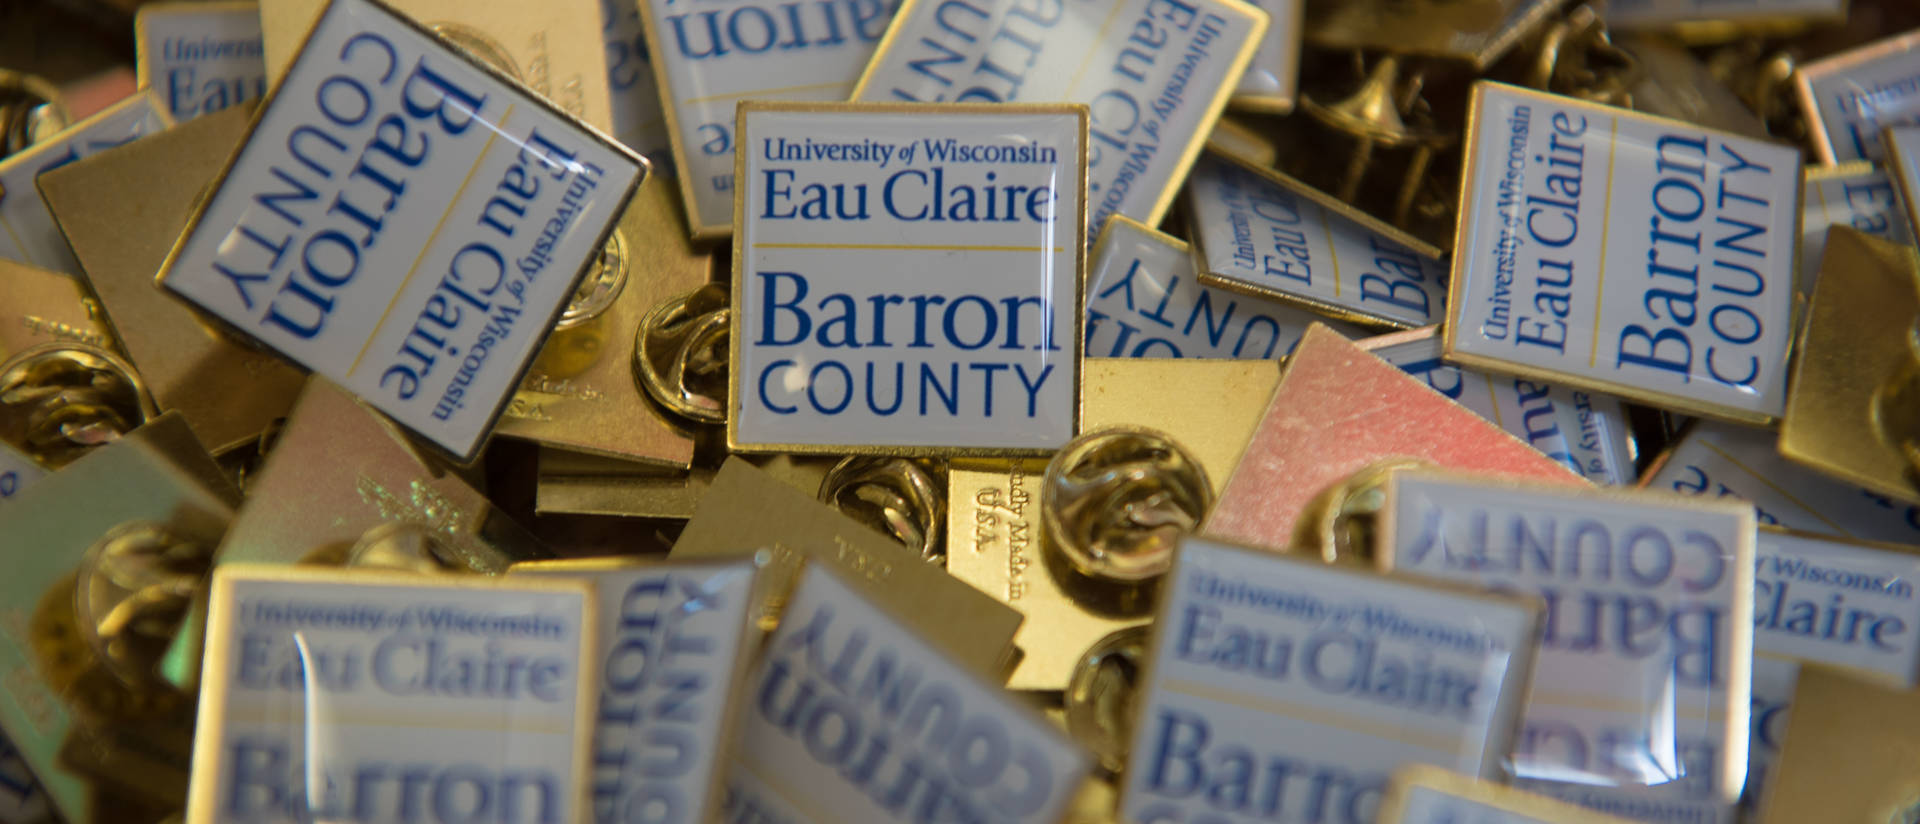 Baroon County buttons